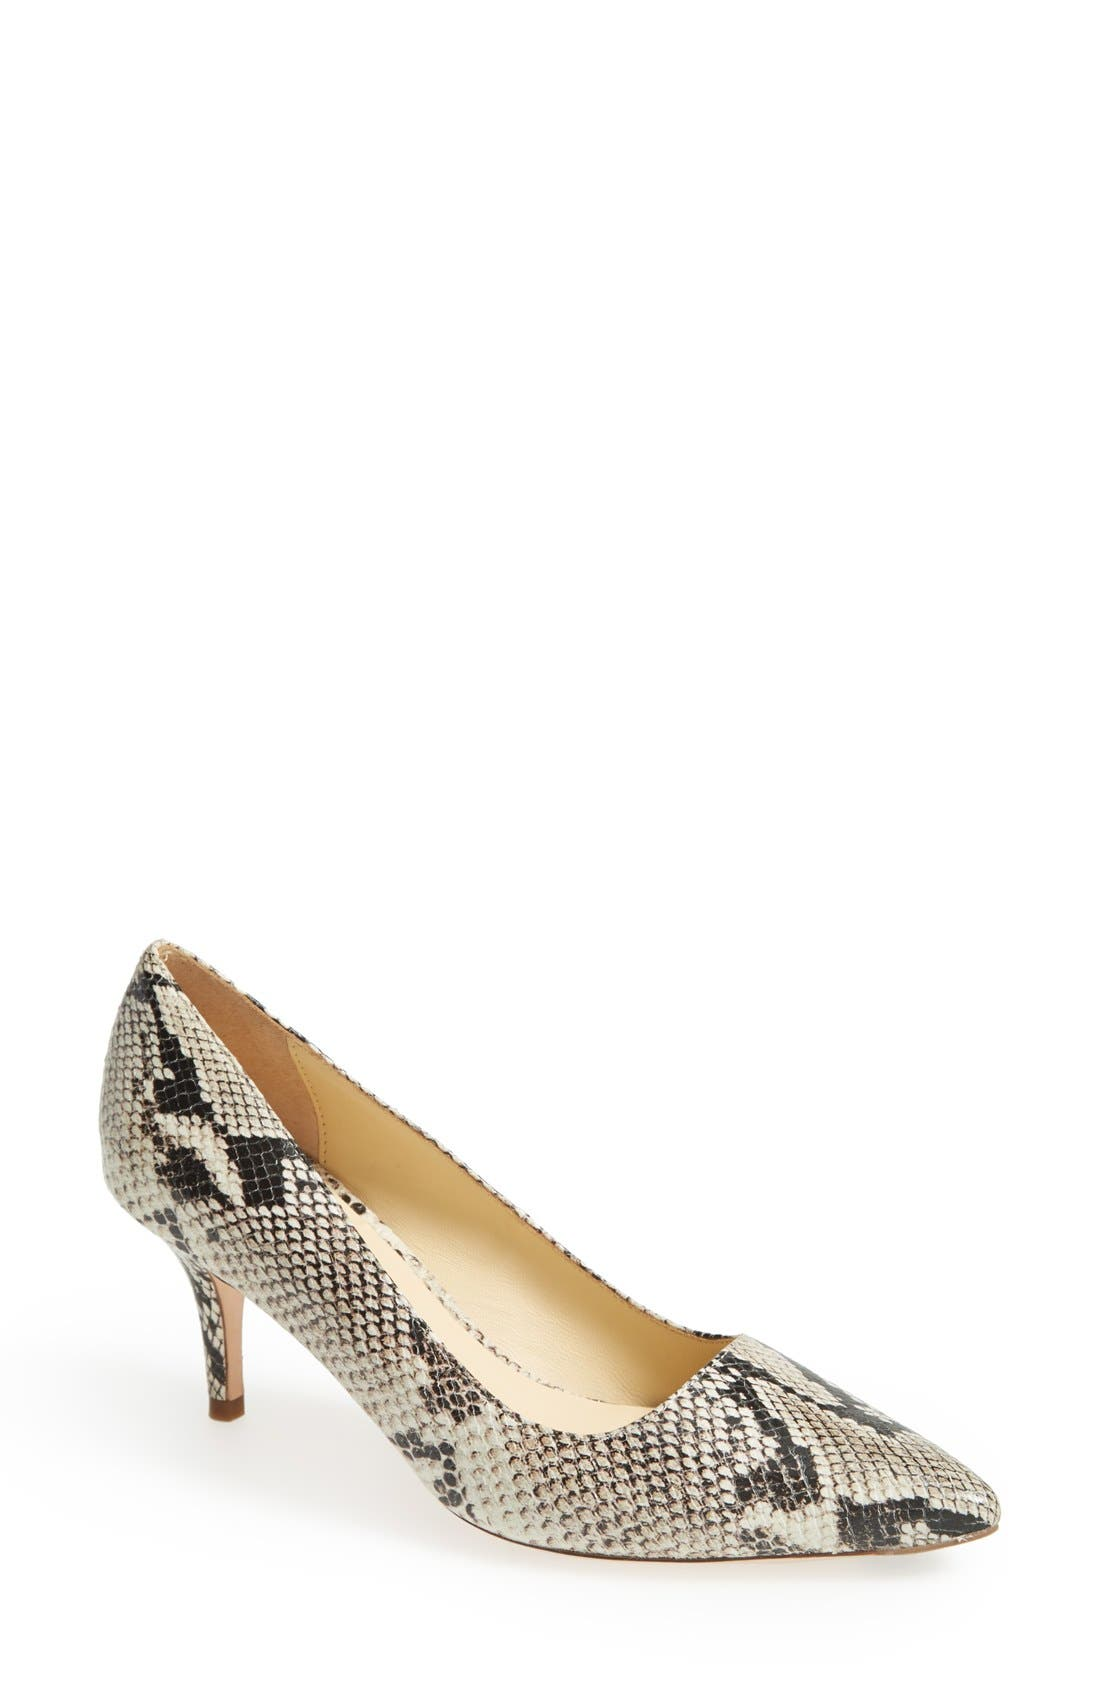 Main Image - Cole Haan 'Bradshaw' Pointy Toe Pump (Women)